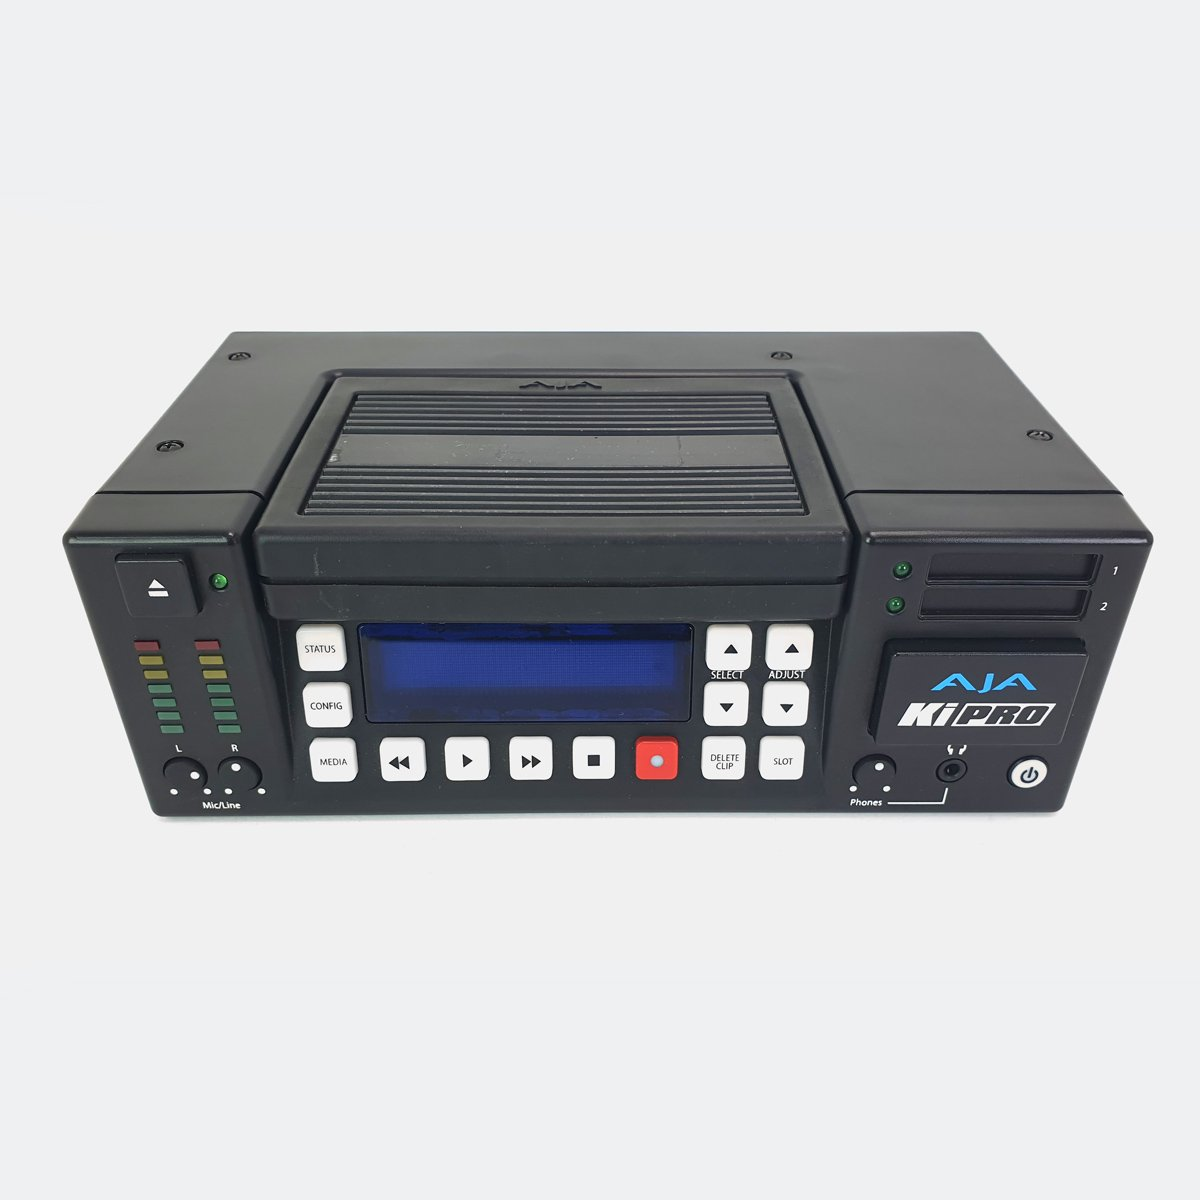 Used AJA Ki Pro SD/HD recorder with two 512GB SSD drives